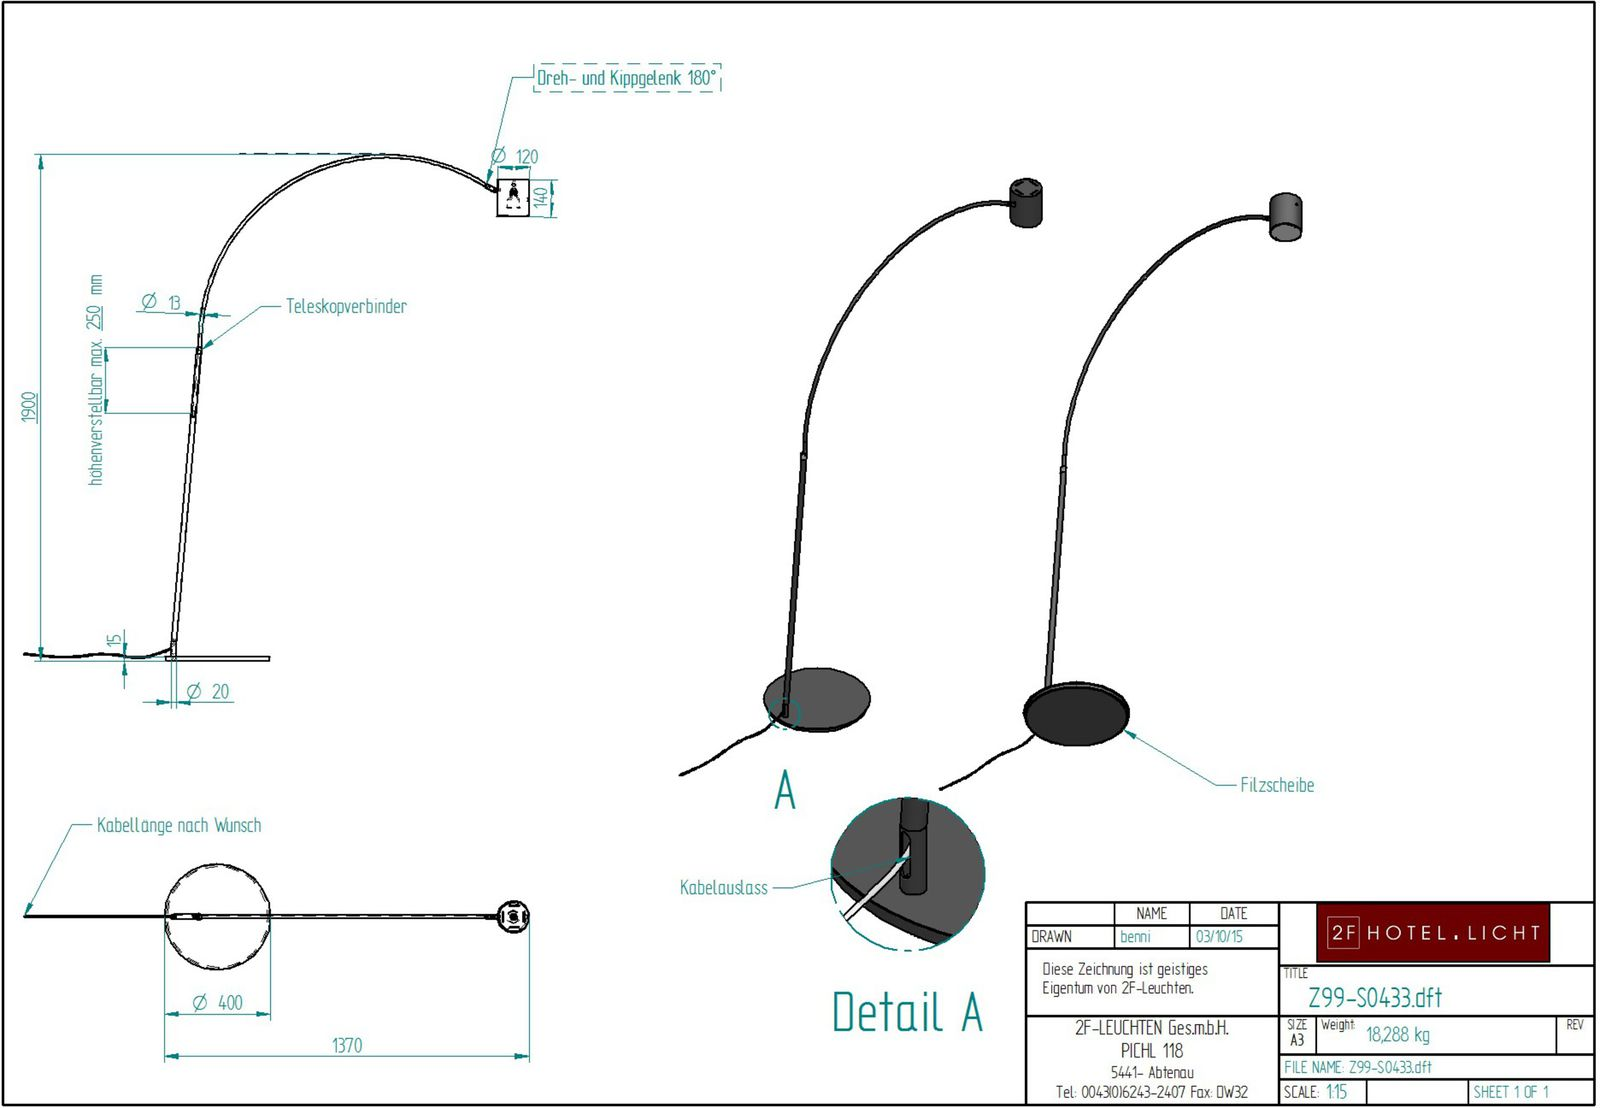 floor lamp, L:0400mm, w:~1440mm, H:~2200mm, surface: Metall SB softblack, techn. Data: GU10, LED 5W, switch: not dimmable, cable color: black